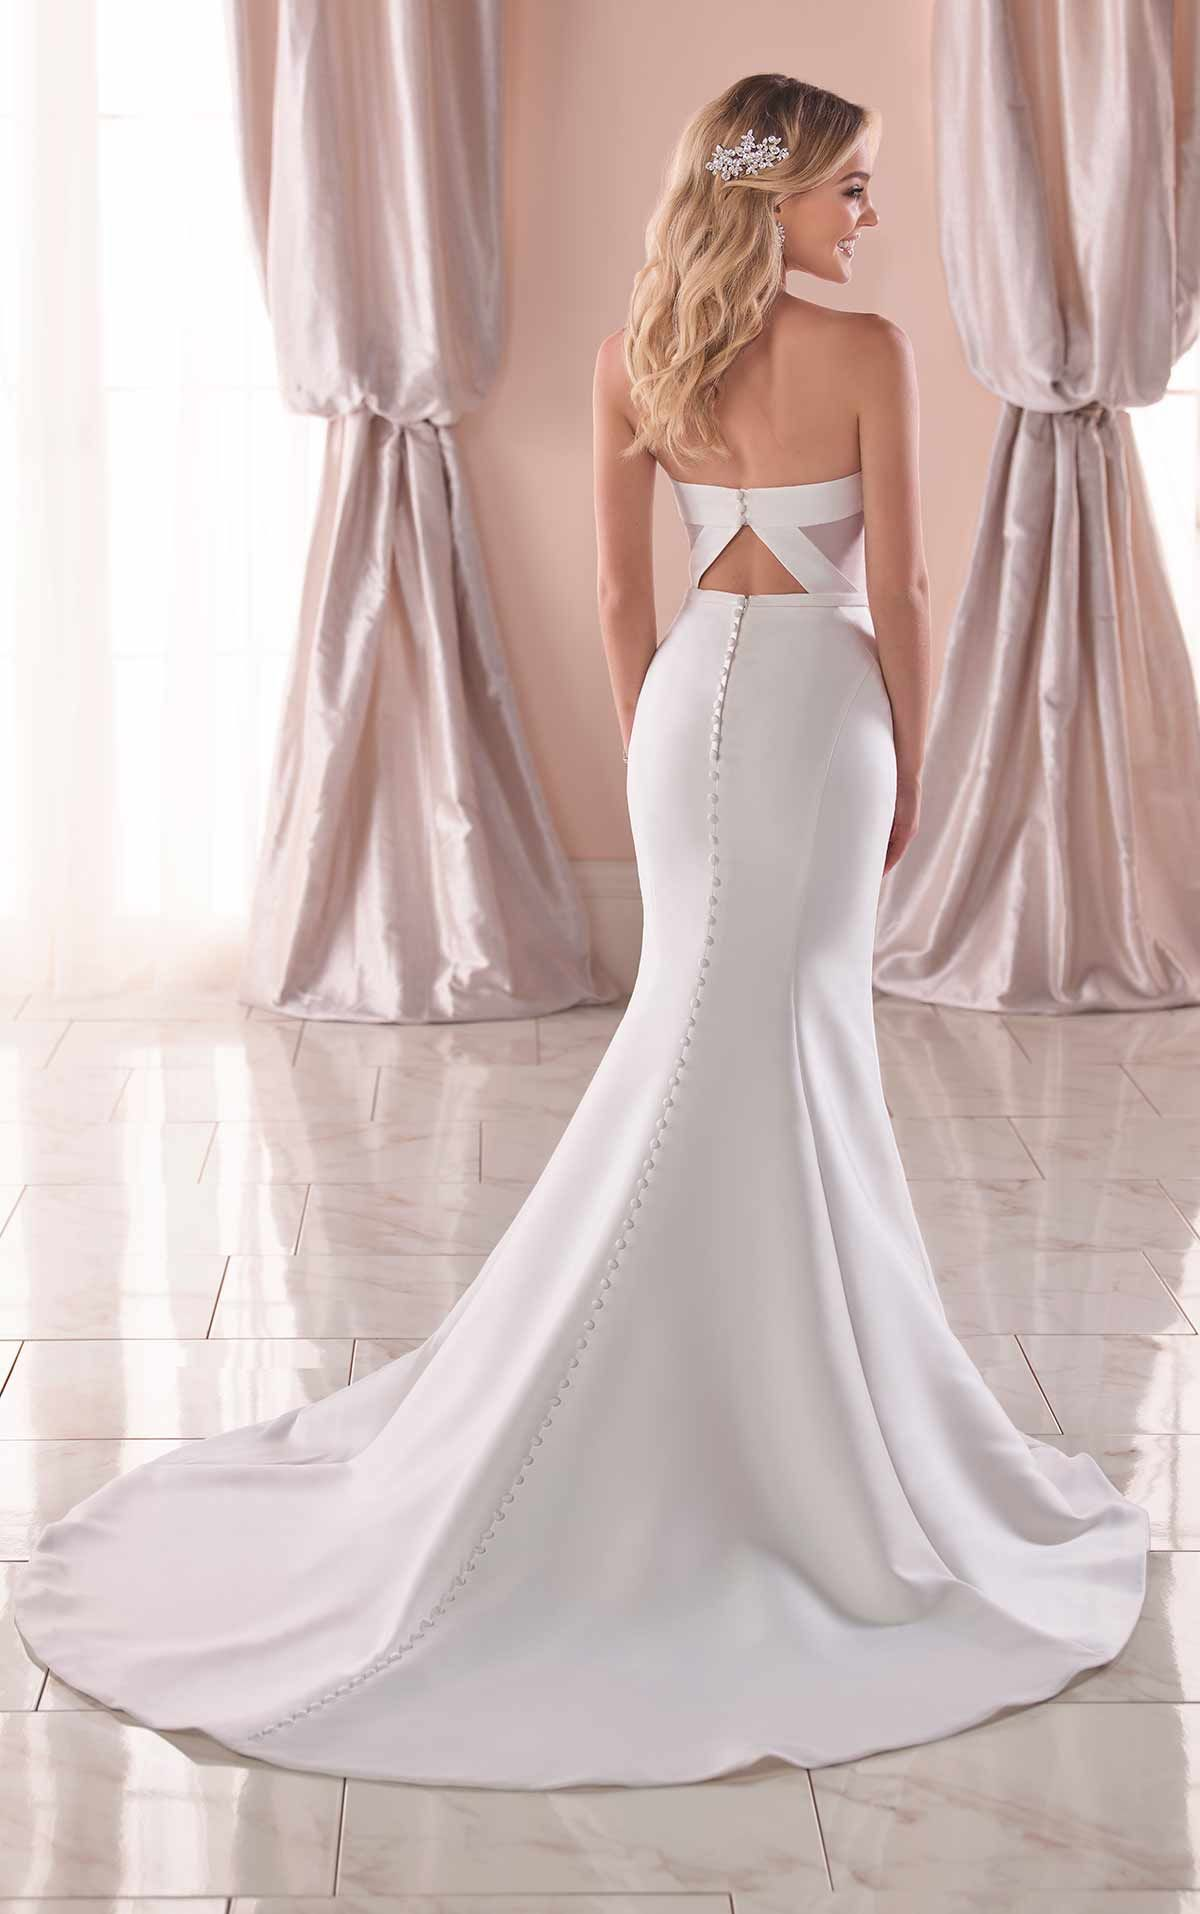 Sincere Real Ivory Strapless Beaded Chiffon Beach Wedding Dresses Informal Reception Gowns Bridal Gowns Robe De Mariee Custom Made 2019 Carefully Selected Materials Weddings & Events